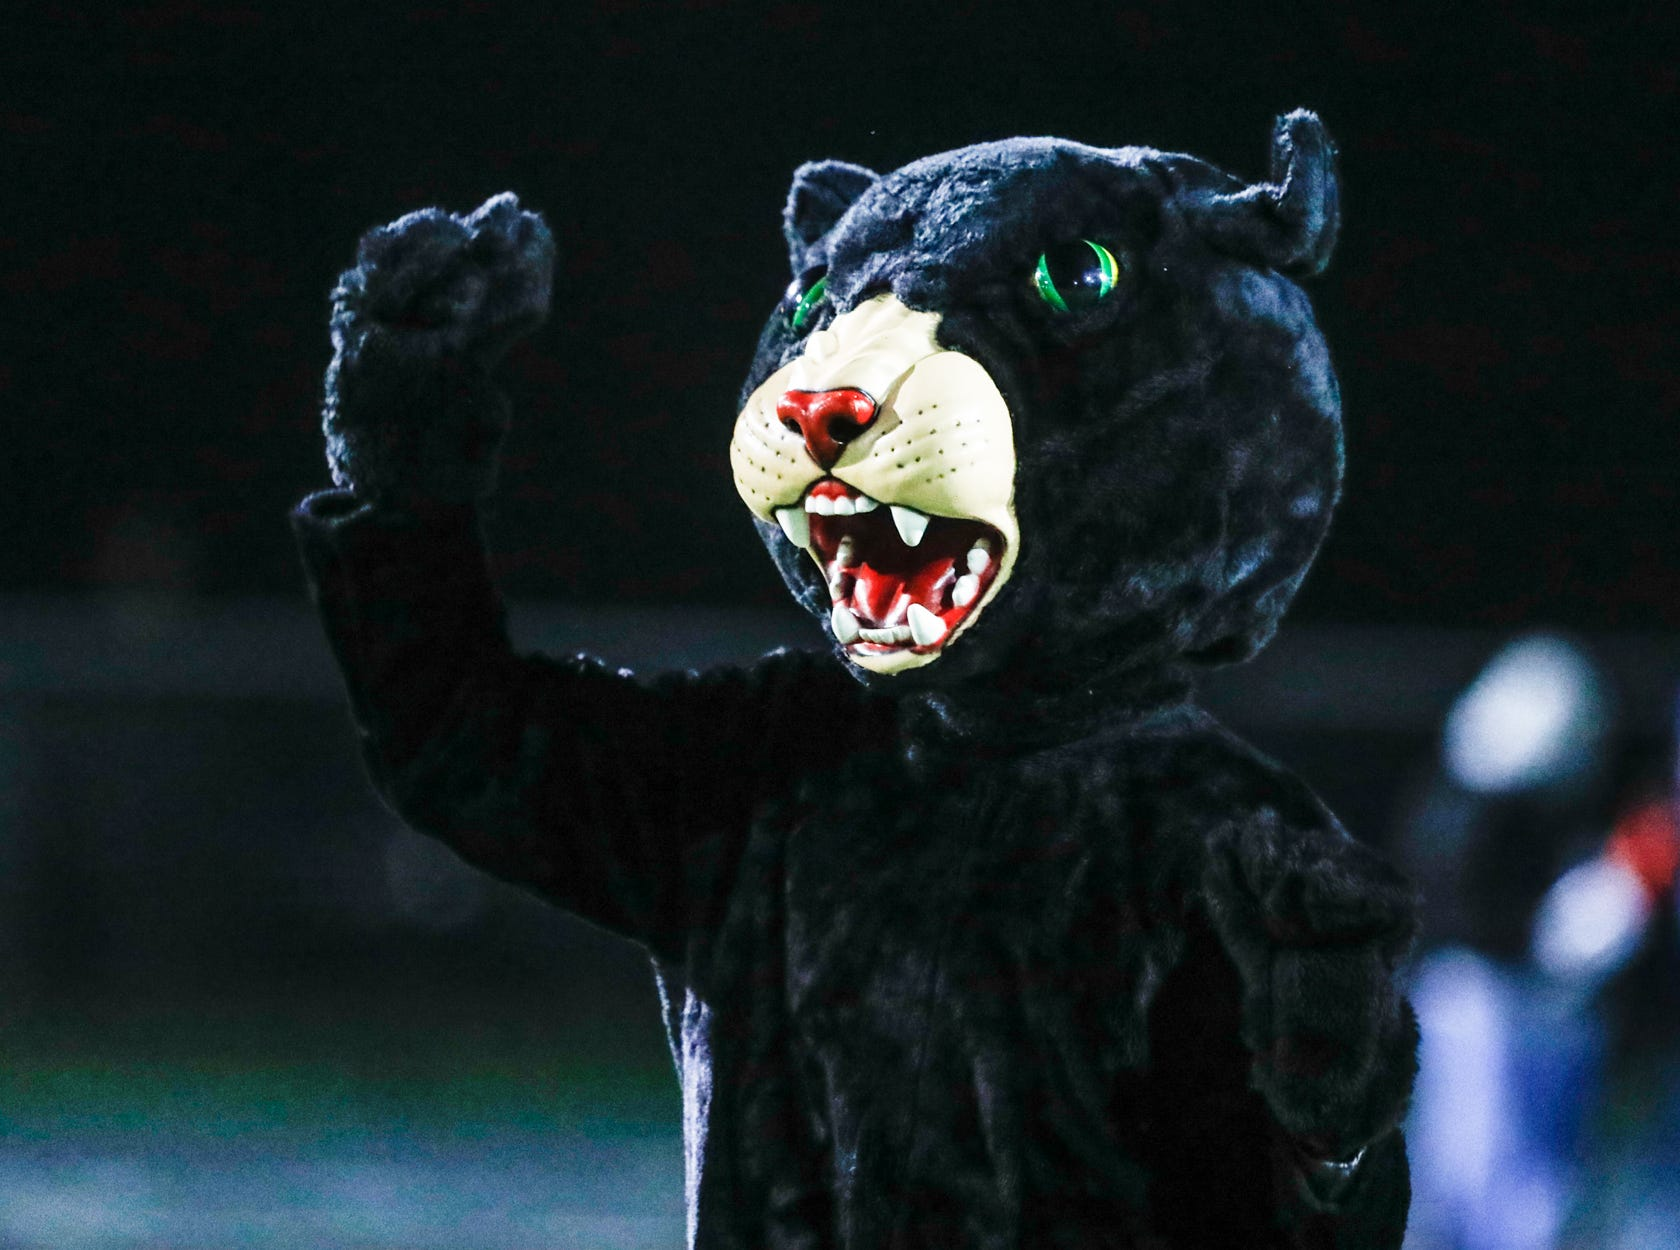 The North Central High School Panthers mascot revs up the crowd  during a regional finals game against the Warren Central High School Warriors at North Central High School on Friday, Nov. 9, 2018.